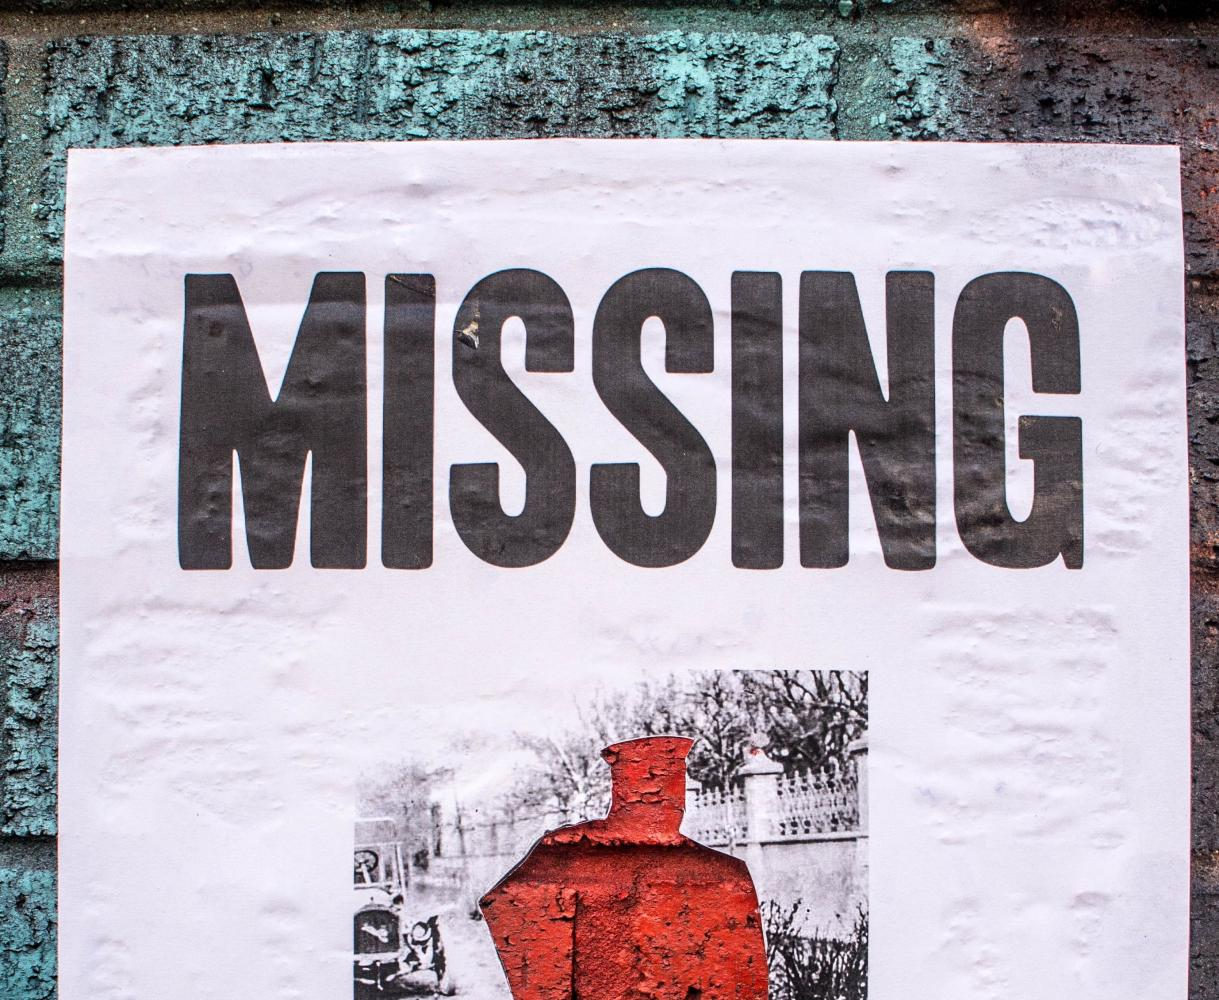 Missing person poster